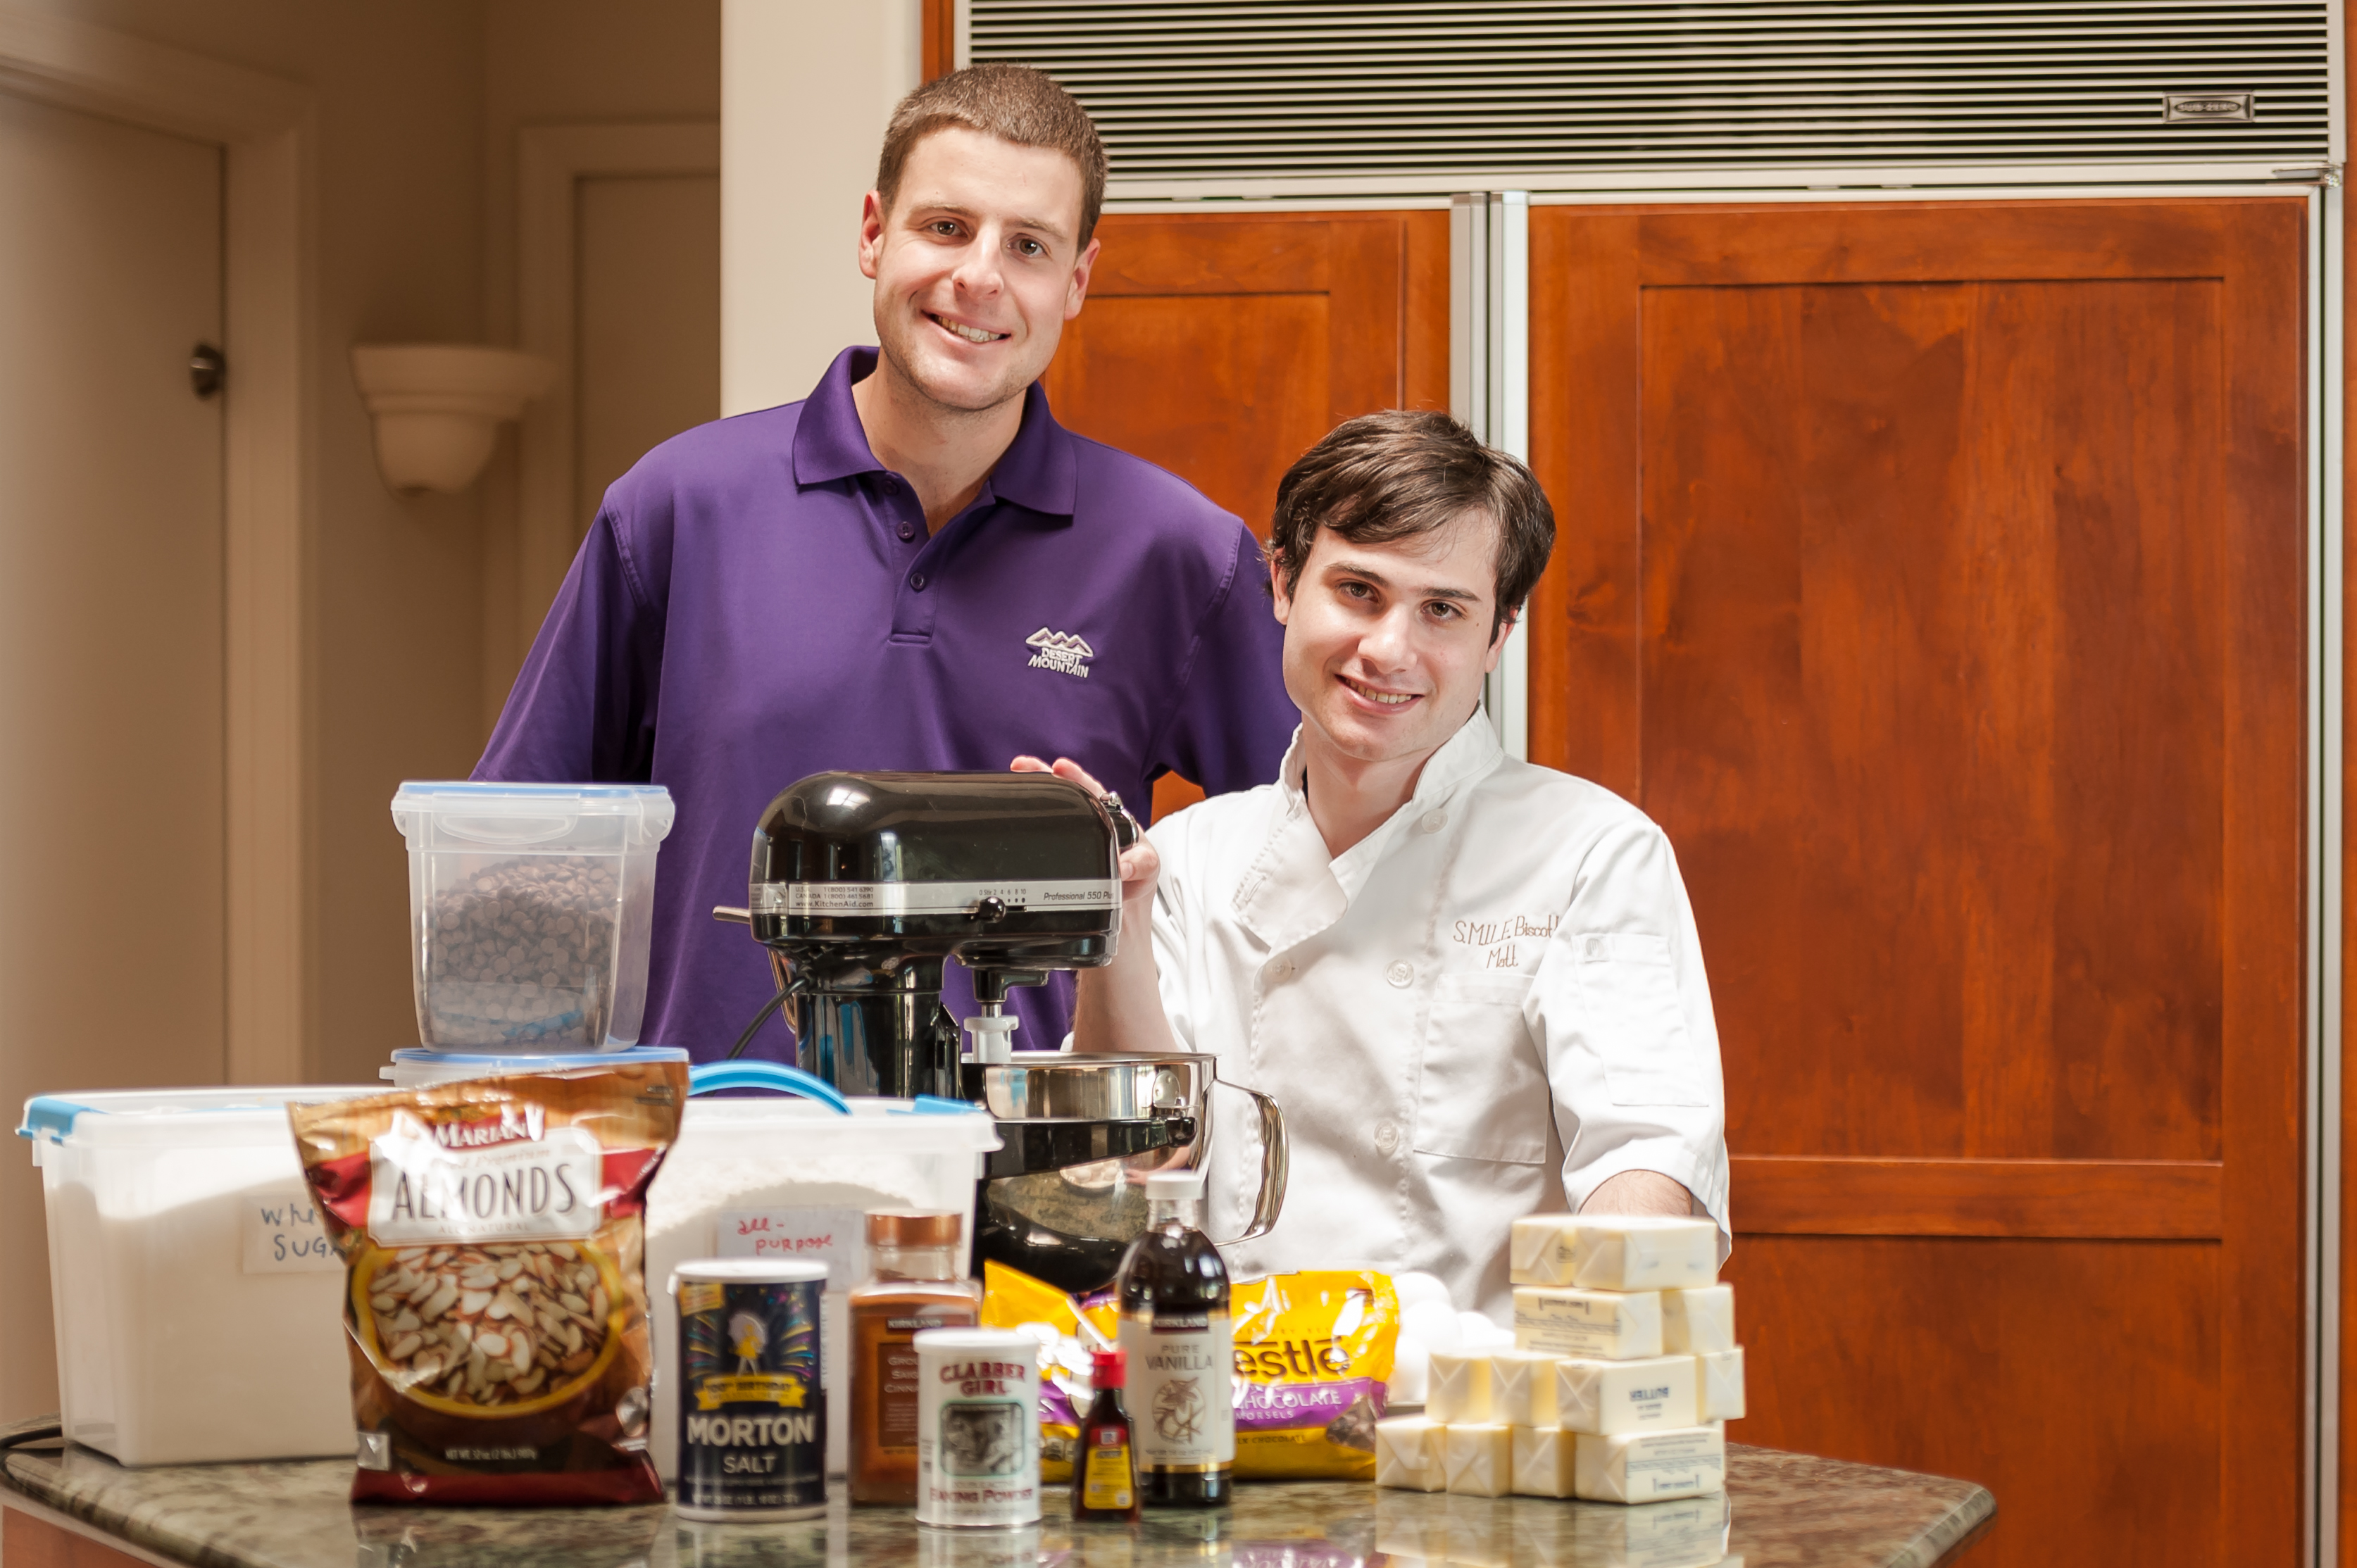 Matt (right) along with one of SMILE's other biscotti bakers